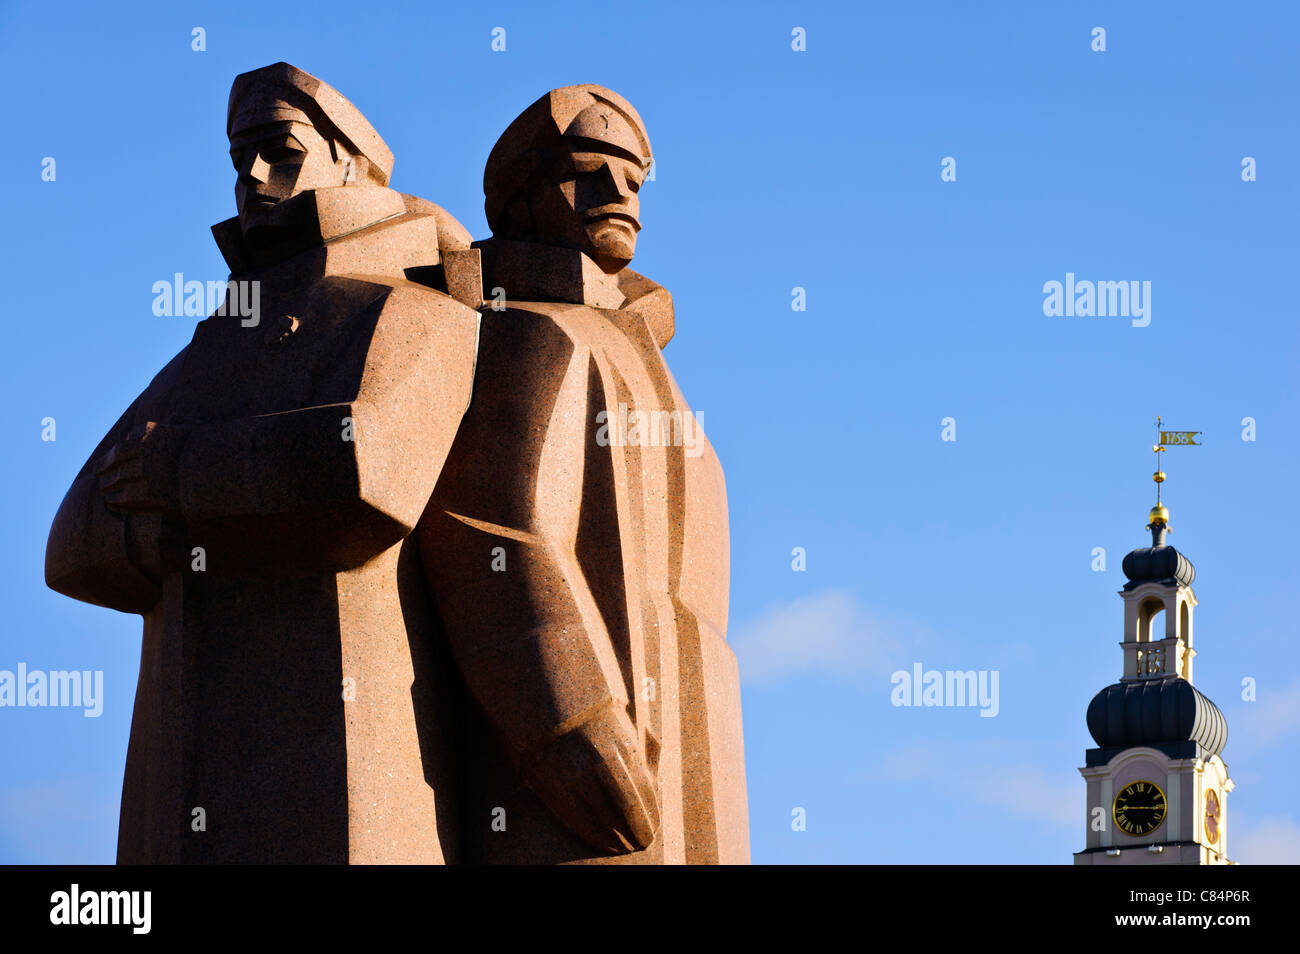 Riga. Latvian Riflemen statue & Town Hall tower. - Stock Image